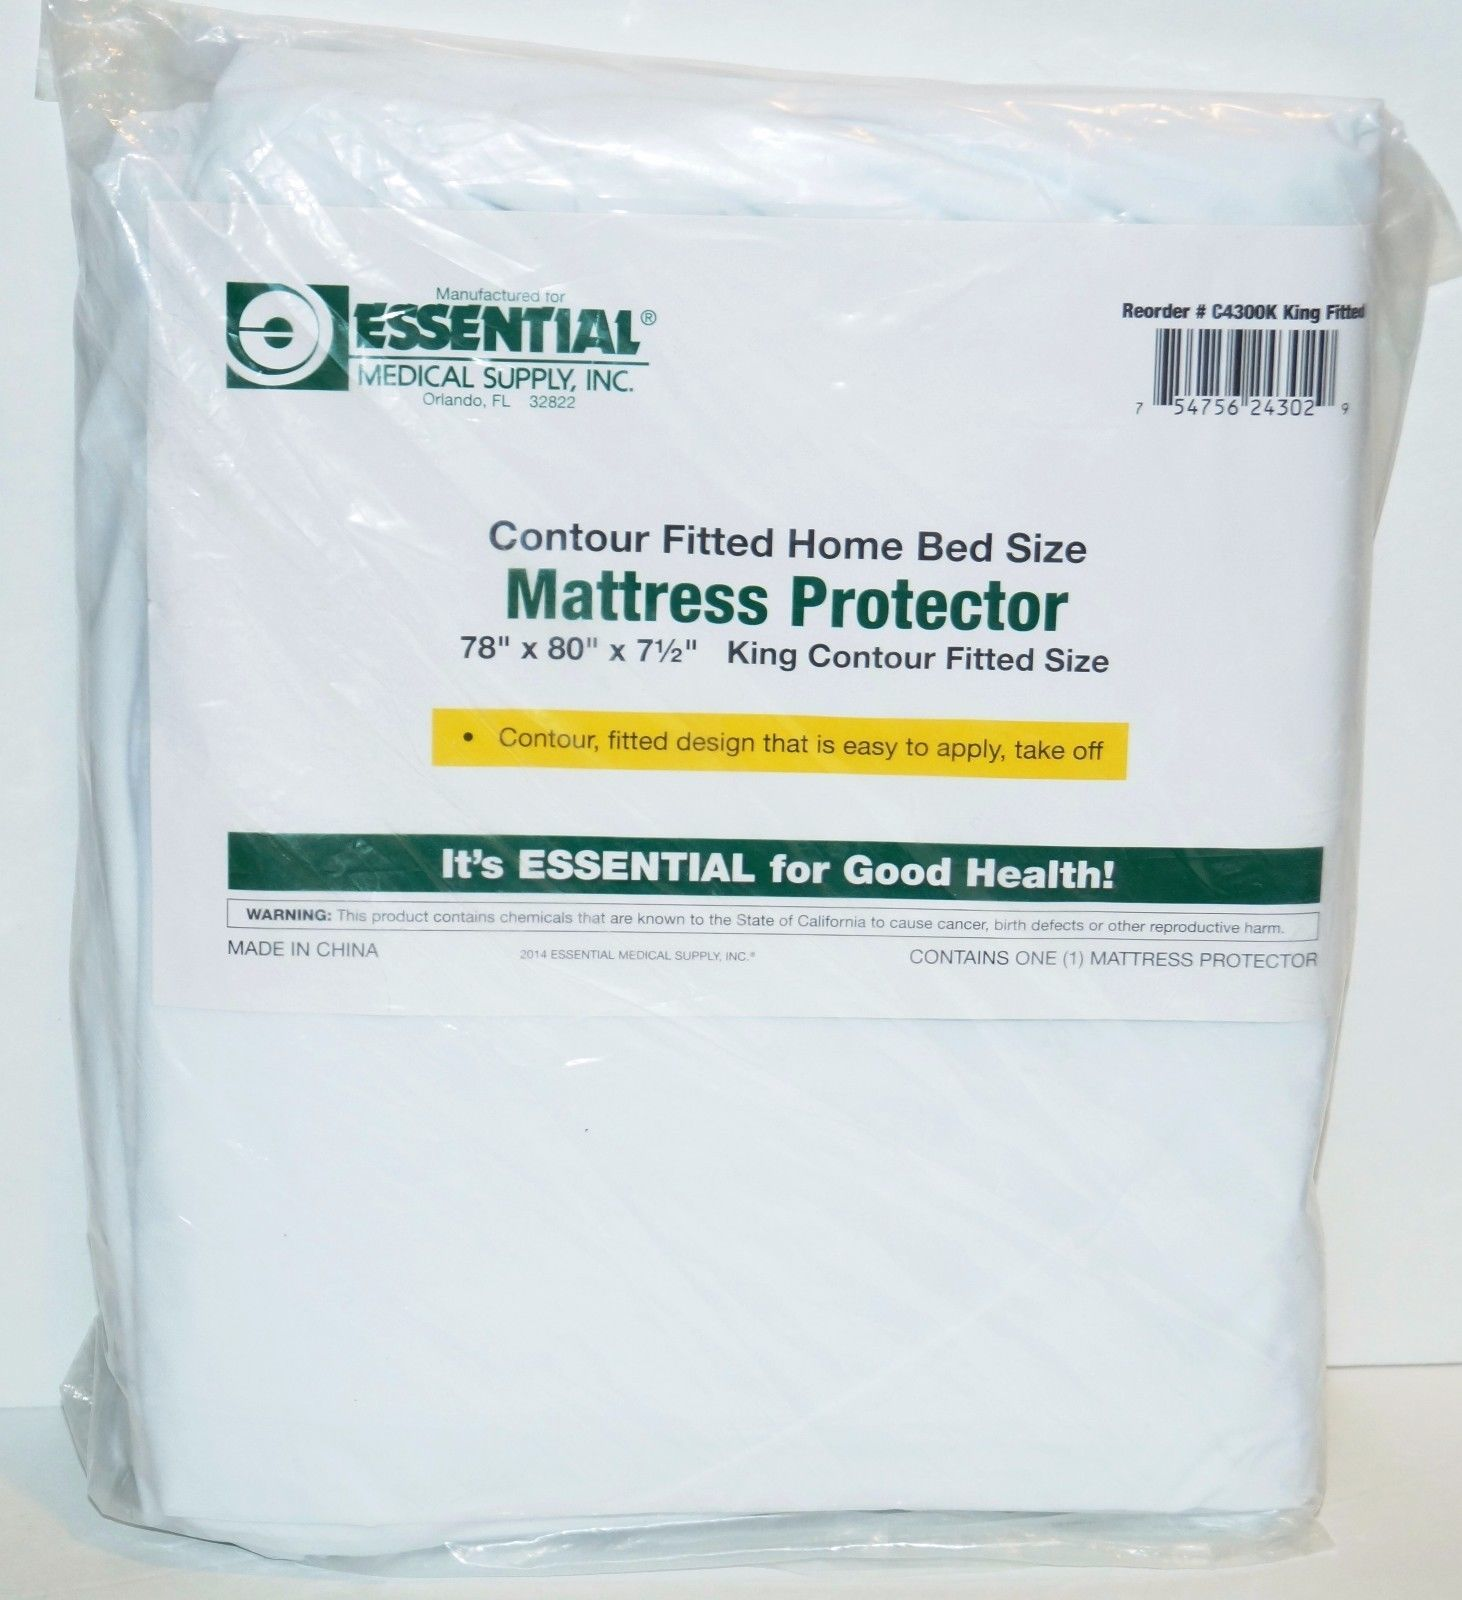 Essential Medical Supply Contour Mattress Cover, King, 78 Inch X 80 Inch X 7 Inc - $9.47